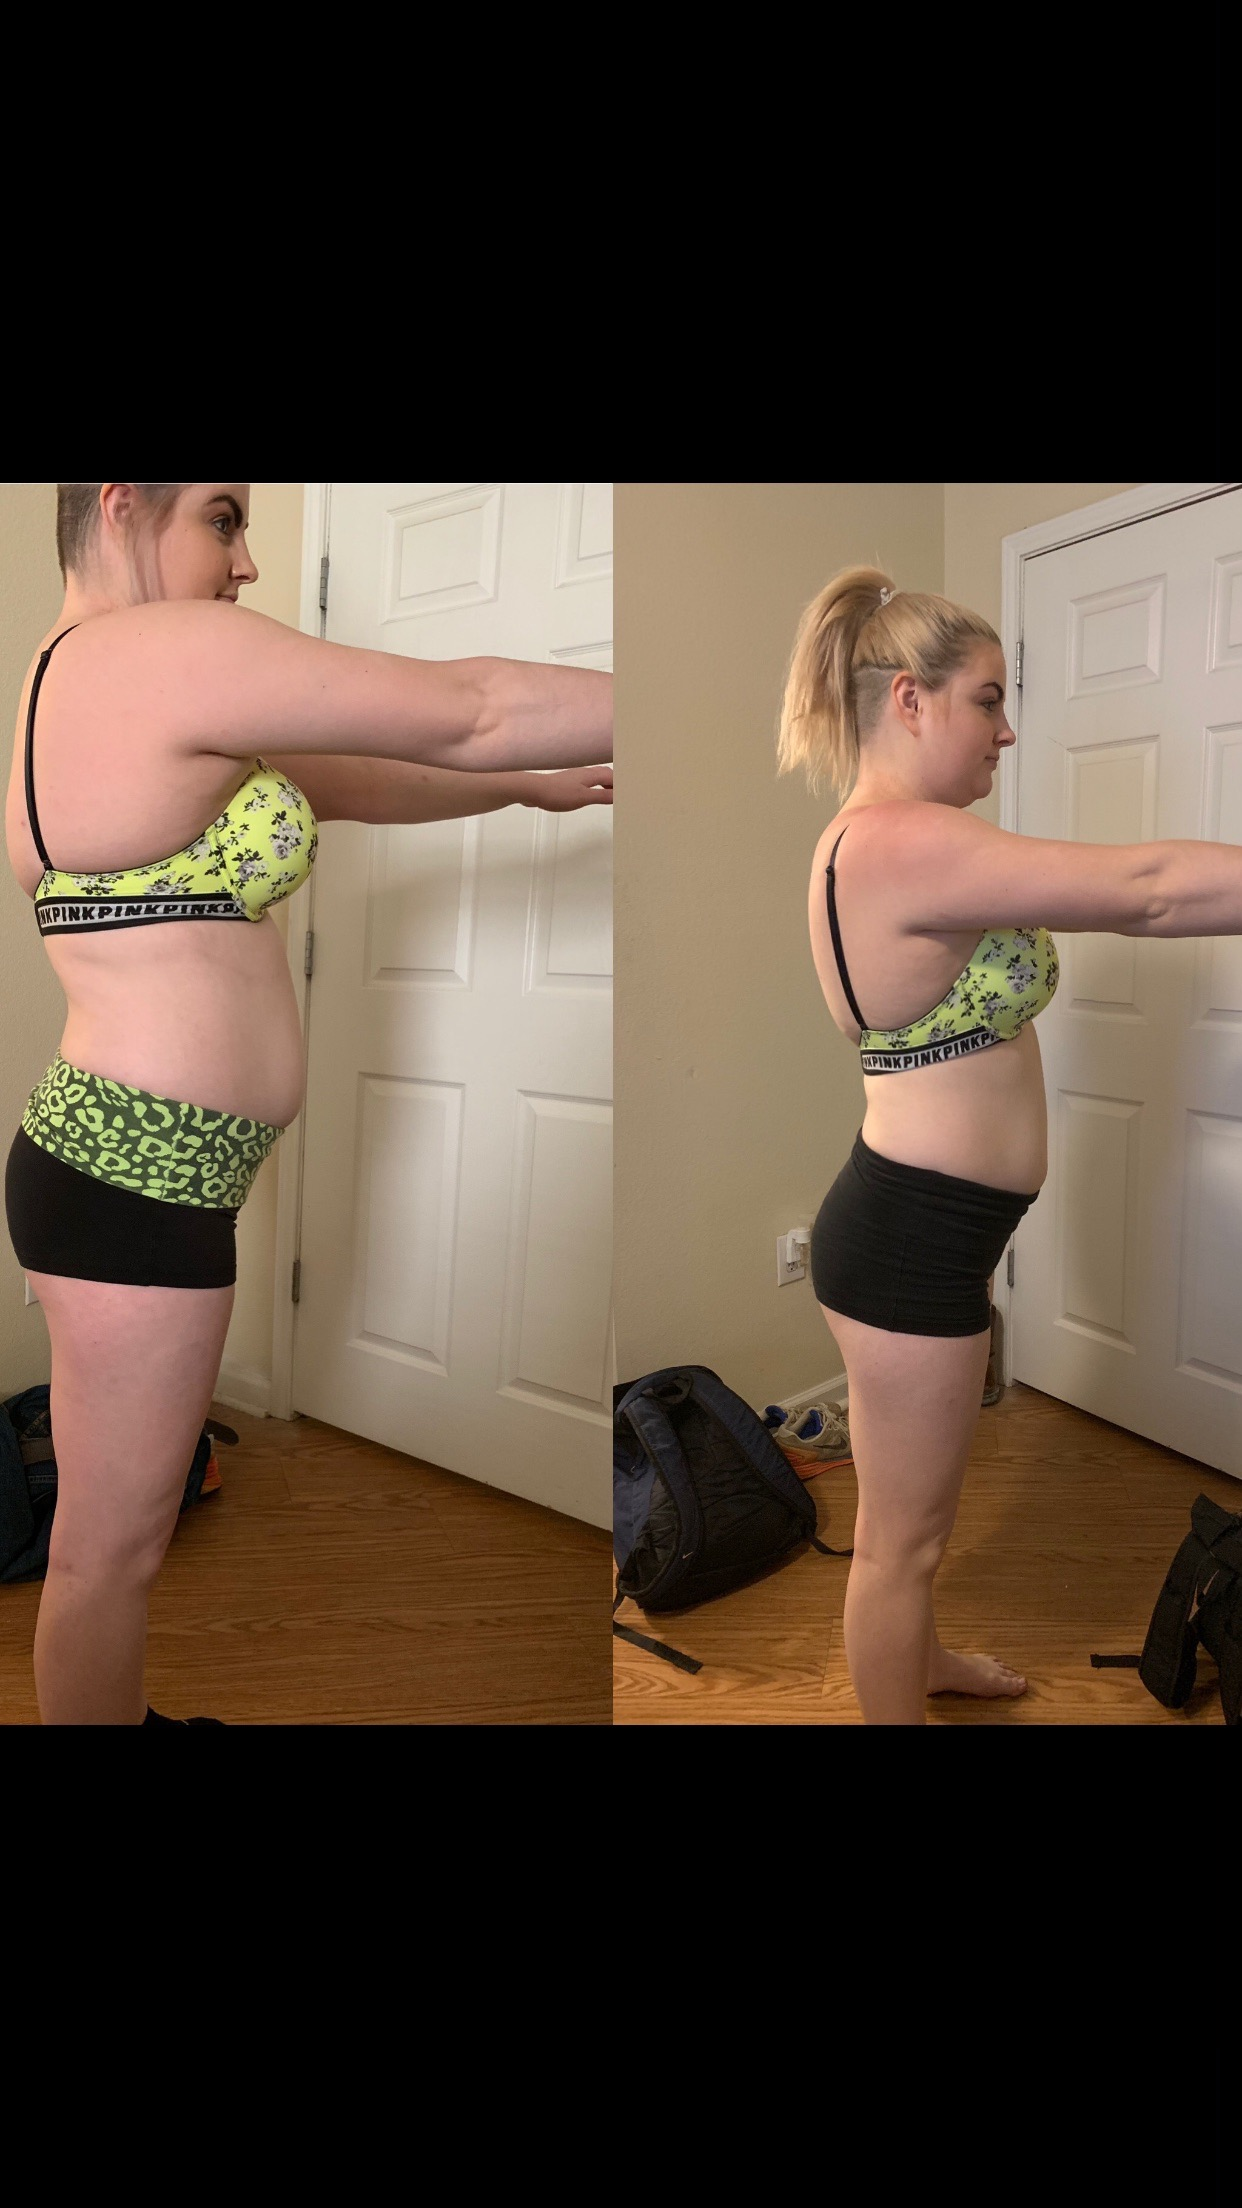 """- """"Hannah's MPR program is so helpful! I've never been athletic, or fit. Always been smaller until my metabolism caught up with me and then I didn't know how to eat right or what to do. She makes customized workouts for me and personally shows me how to do everything properly. My workouts are also perfectly intense for me, she pushes me just enough to up my weights and be faster but not over the edge. She has positive, motivating energy and she is so nice every time we talk. She works great around my schedule (I'm very busy) and texts me back almost immediately at almost anytime of the day (I have a lot of questions). She changes things up, both the food and workouts so you don't feel like you're doing the same thing every week, or if you dislike something she'll change it. She tells me the measurements of what I need to be eating (didn't even know I needed that). She sends out links of her favorite tupperware, food, supplements, protein and kitchen appliances.... which are all inexpensive. And so is her program, I'm saving so much money on groceries now. Once a week she sends out my measurements, meals, grocery list you can copy and paste to your Click-list at Kroger and full detailed recipes with pictures. She basically dose everything expect cook your food. The meals are easy to make and so tasty. I've also learned a lot from Hannah, she is very knowledgeable and is constantly sharing information with me to help better the way I treat my body and giving her recipes to this young adult that only knows how to make a handful of dishes is exciting. I've been doing this program for a month however I've already lost 2 1/2 inches from my waist. I'm seeing progress, I'm feeling healthier and more energetic. I would definitely recommend Hannah to anyone.""""-Sarah c."""